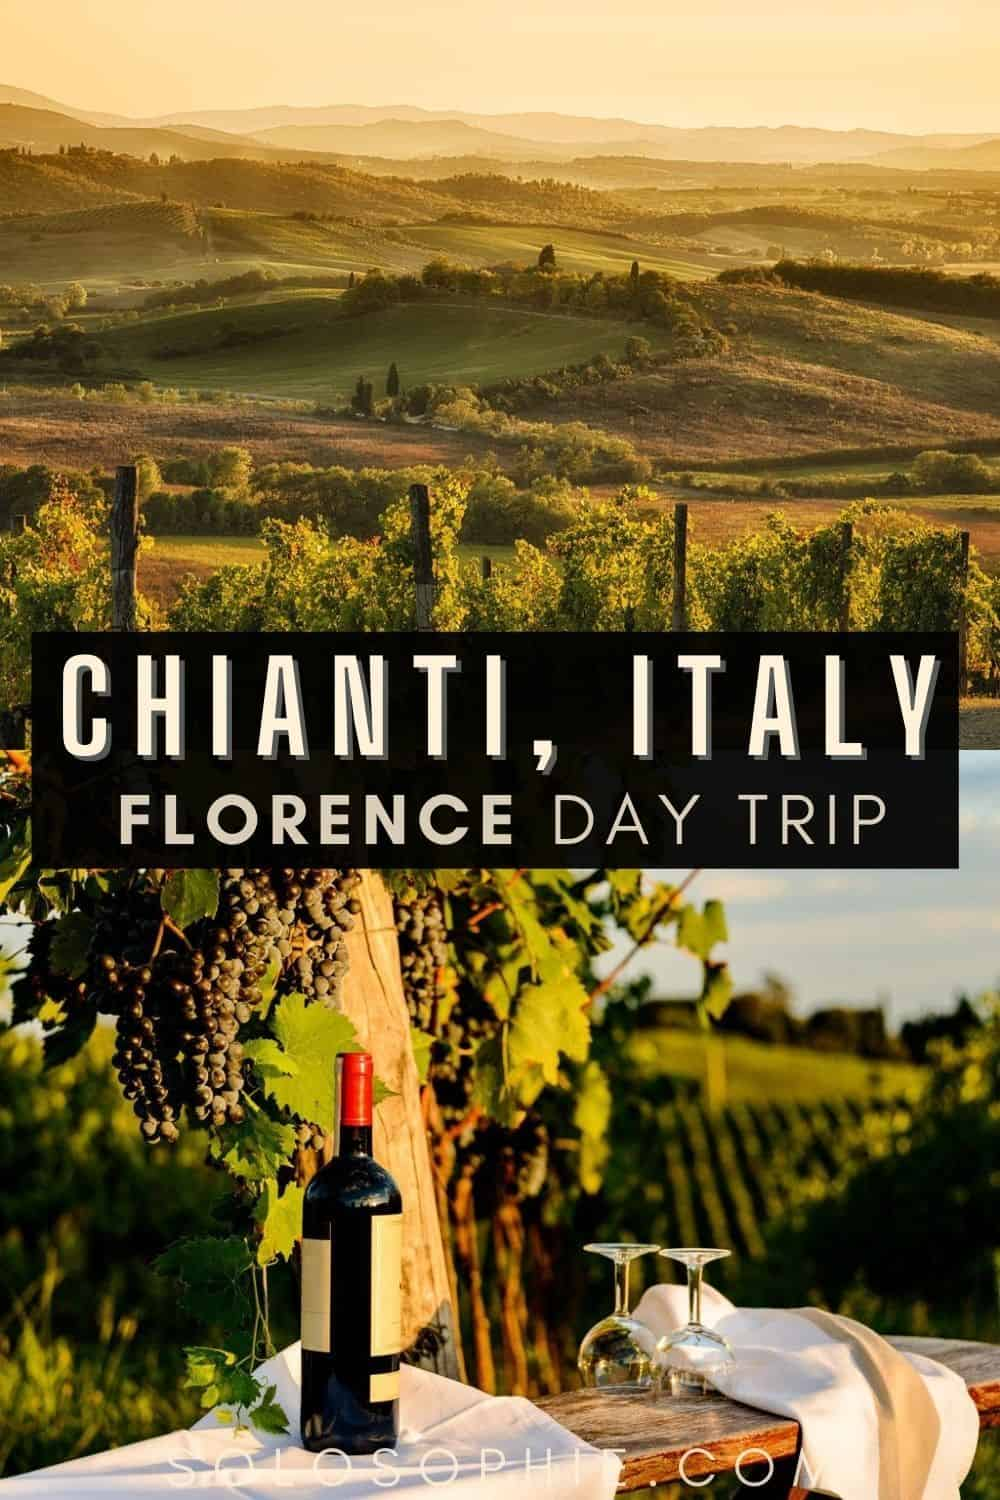 Chianti Italy wine tasting/ Florence to Chianti: A Tuscany Day Trip from Florence